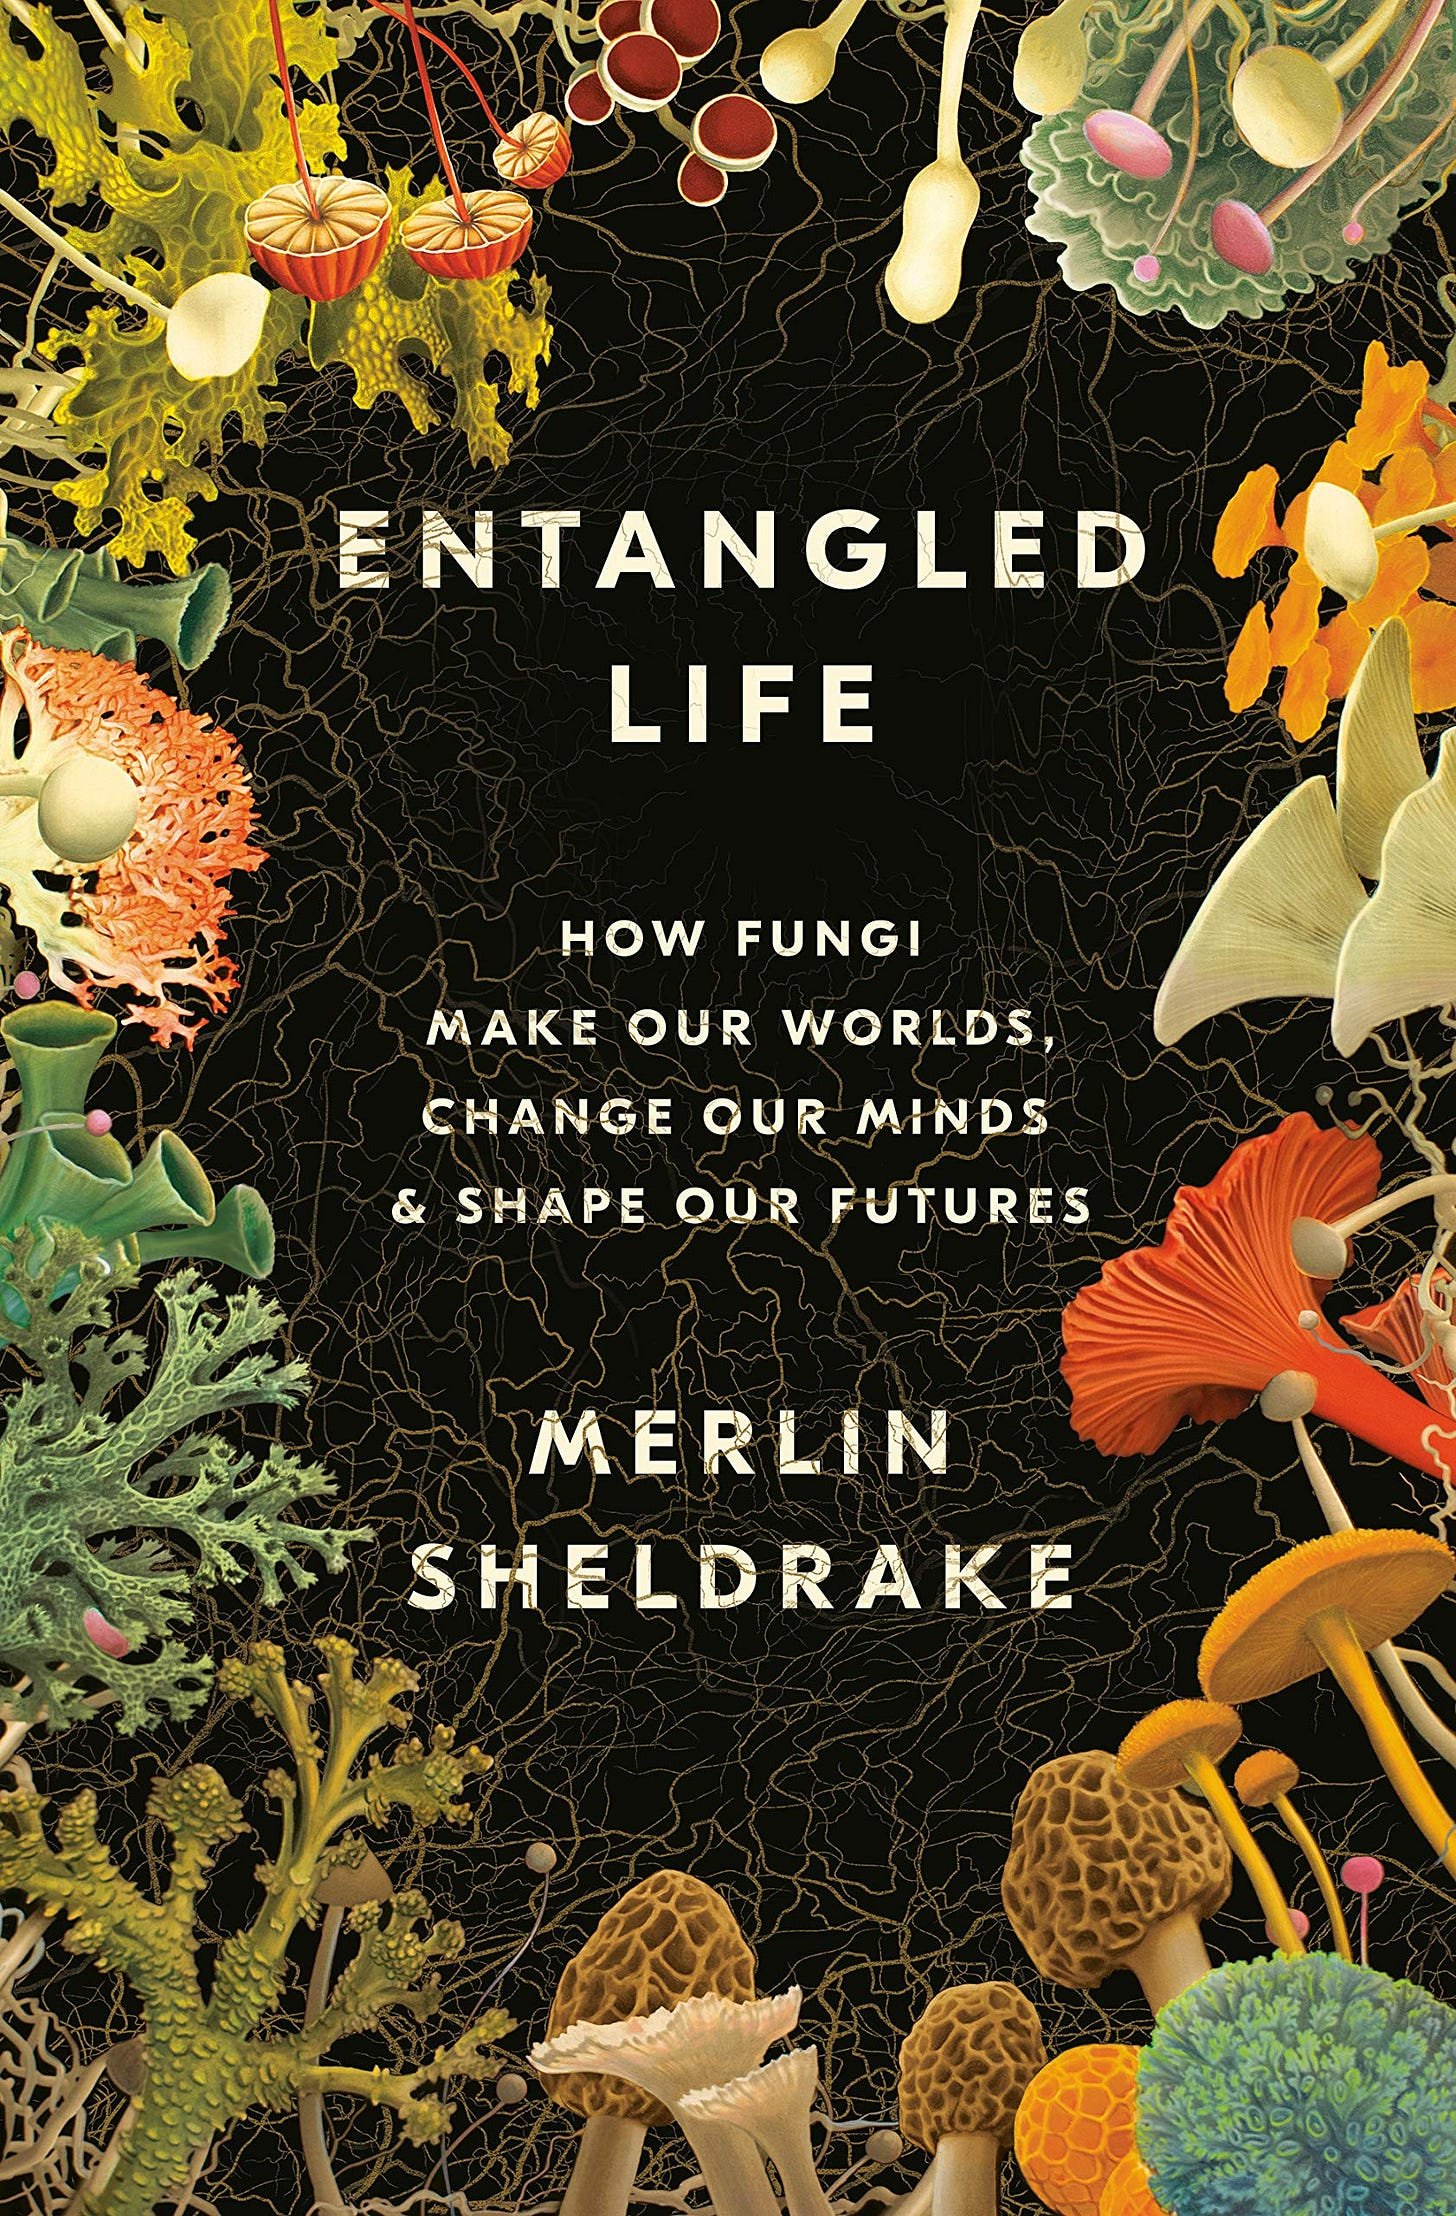 Entangled Life: How Fungi Make Our Worlds, Change Our Minds & Shape Our  Futures: Amazon.co.uk: Sheldrake, Merlin: 9780525510314: Books